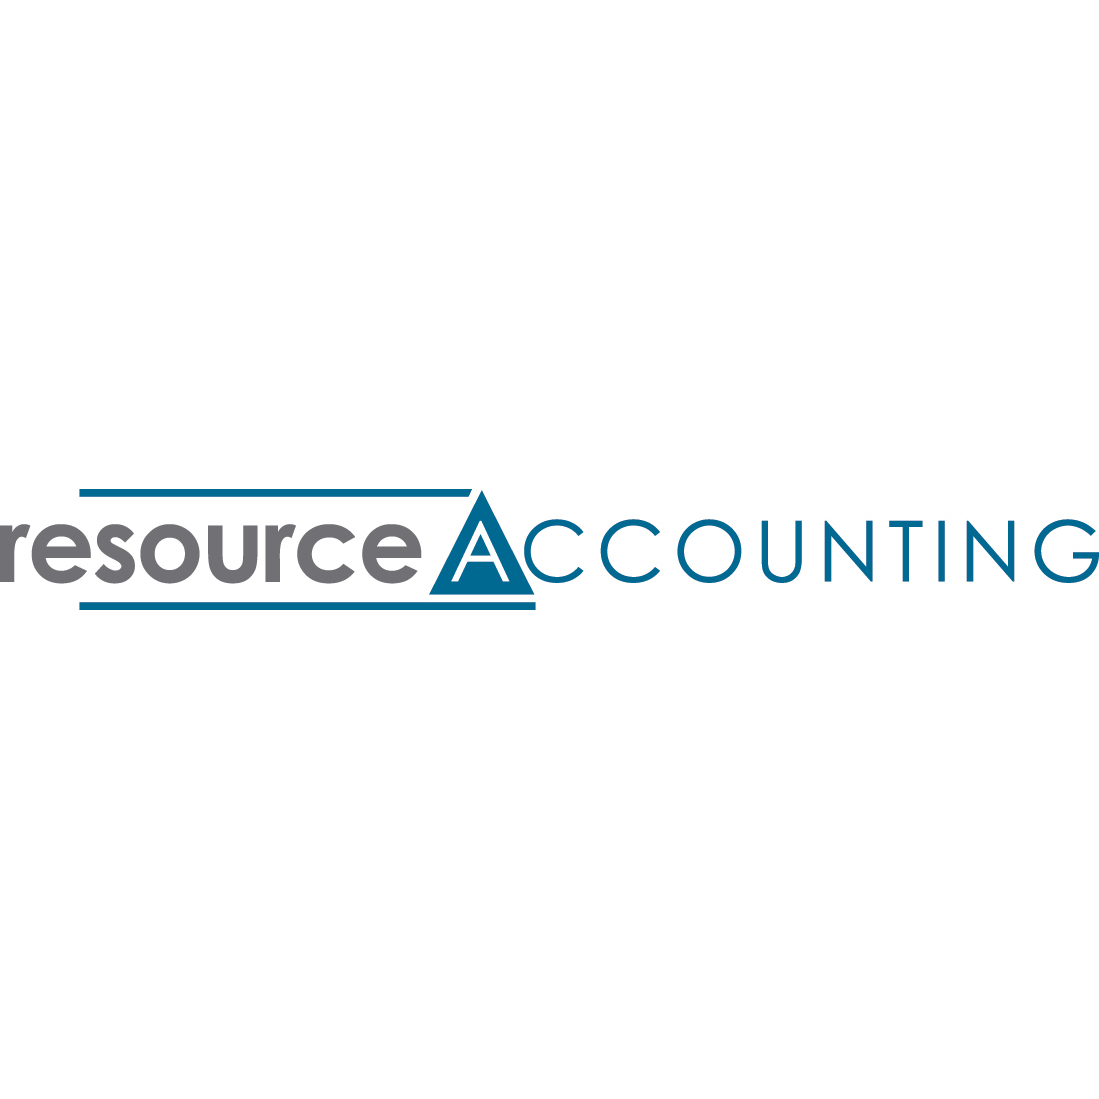 ResourceAccounting